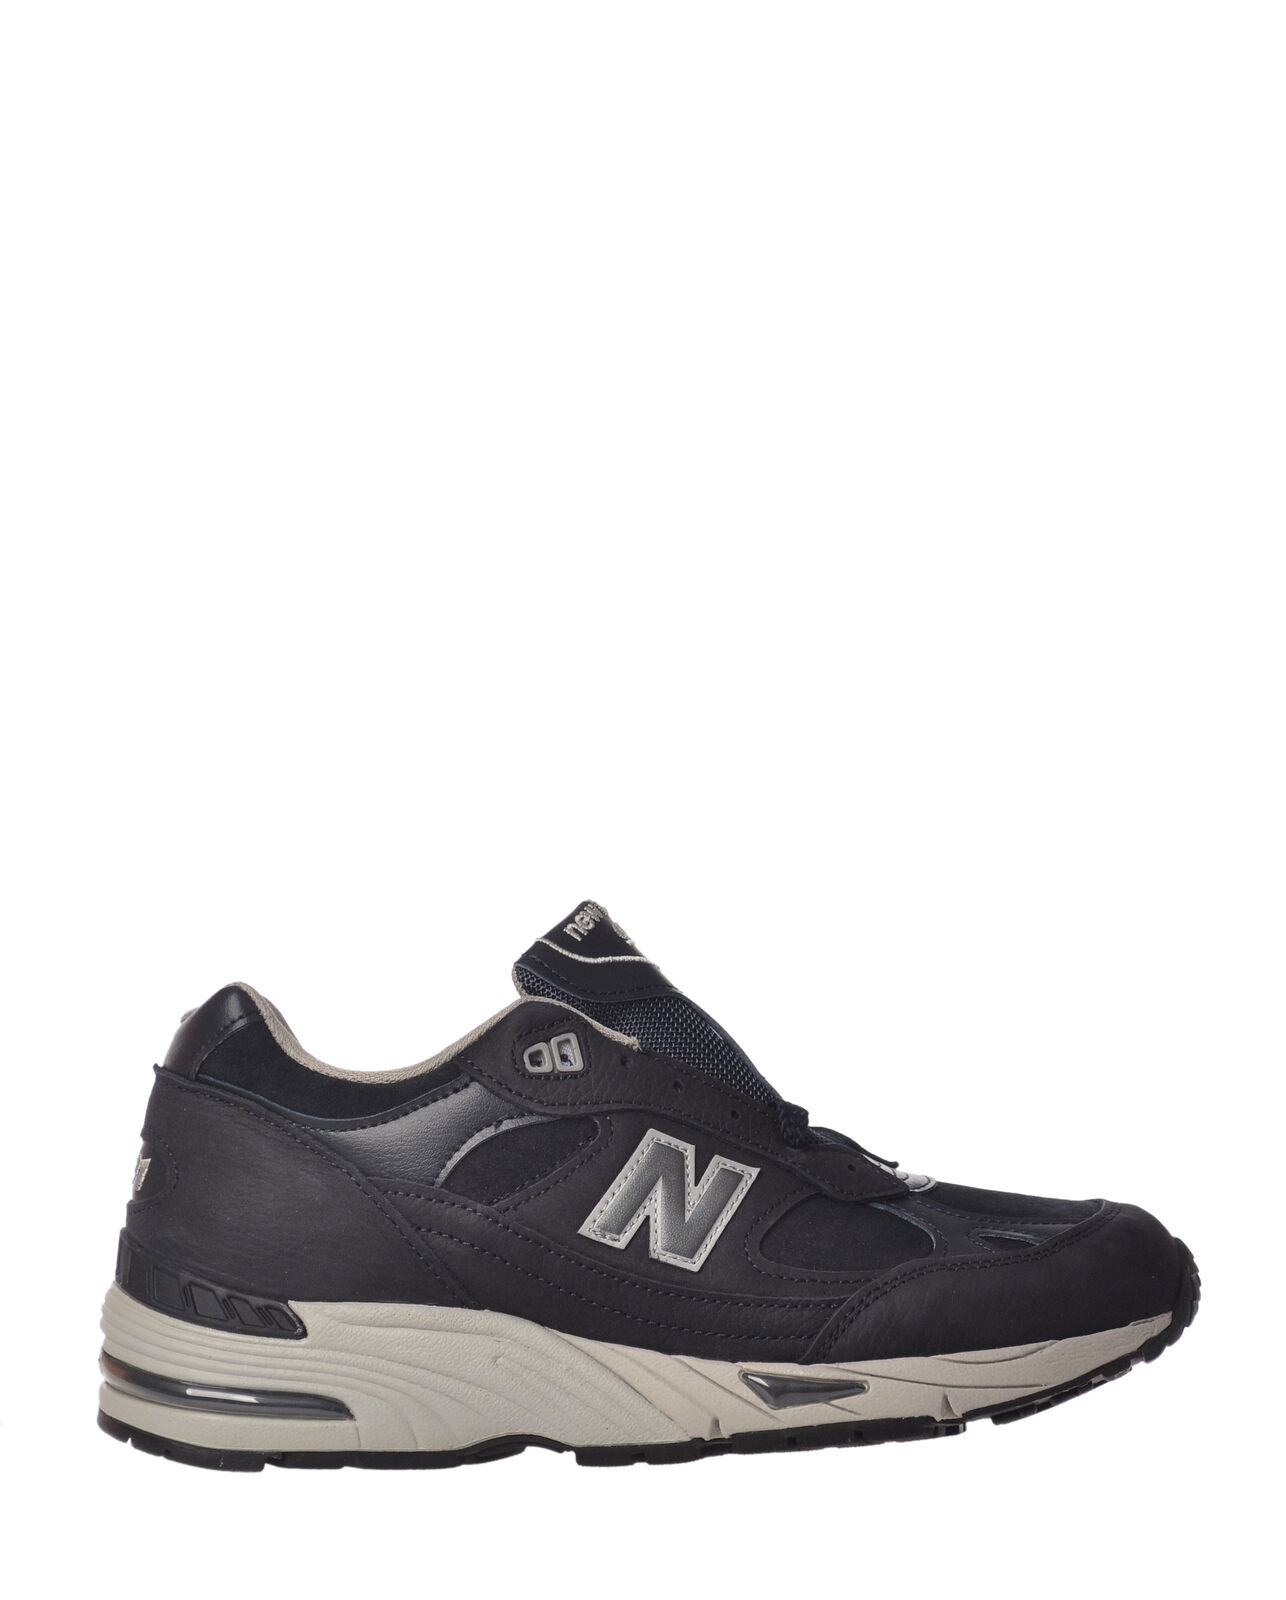 New Balance - shoes-Lace Up - Man - bluee - 4029911H185258